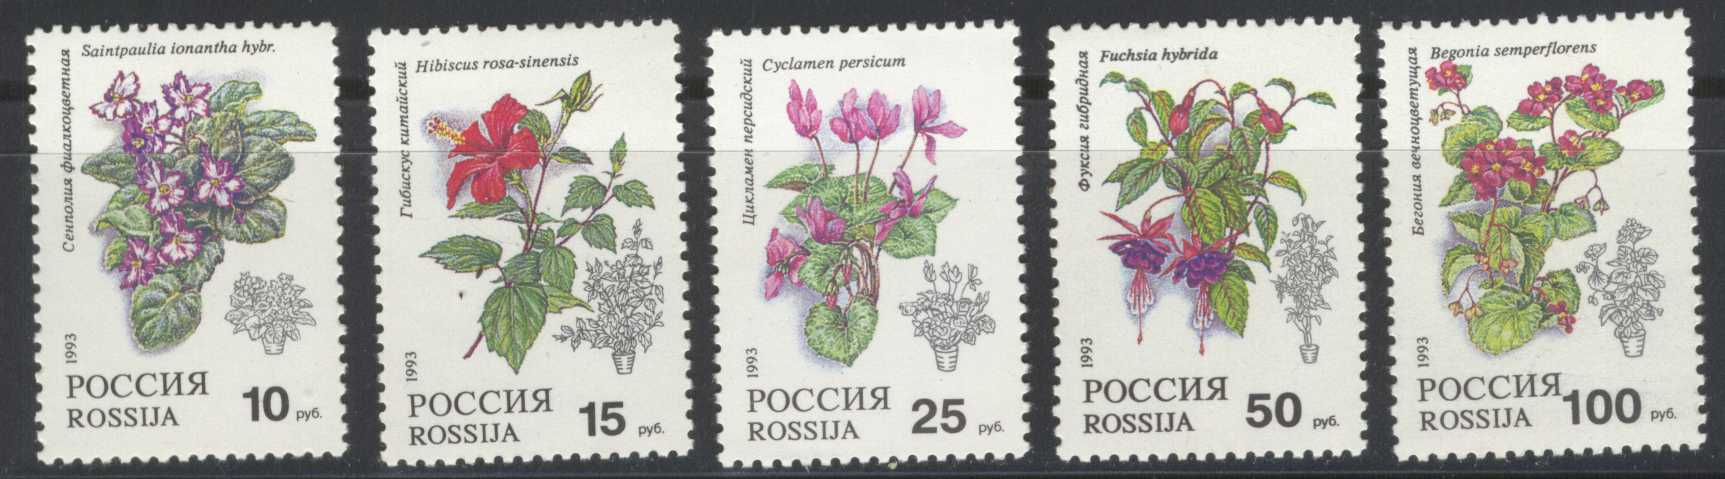 http://www.stampcollectors.ru/images/stamps/1993-9.jpg